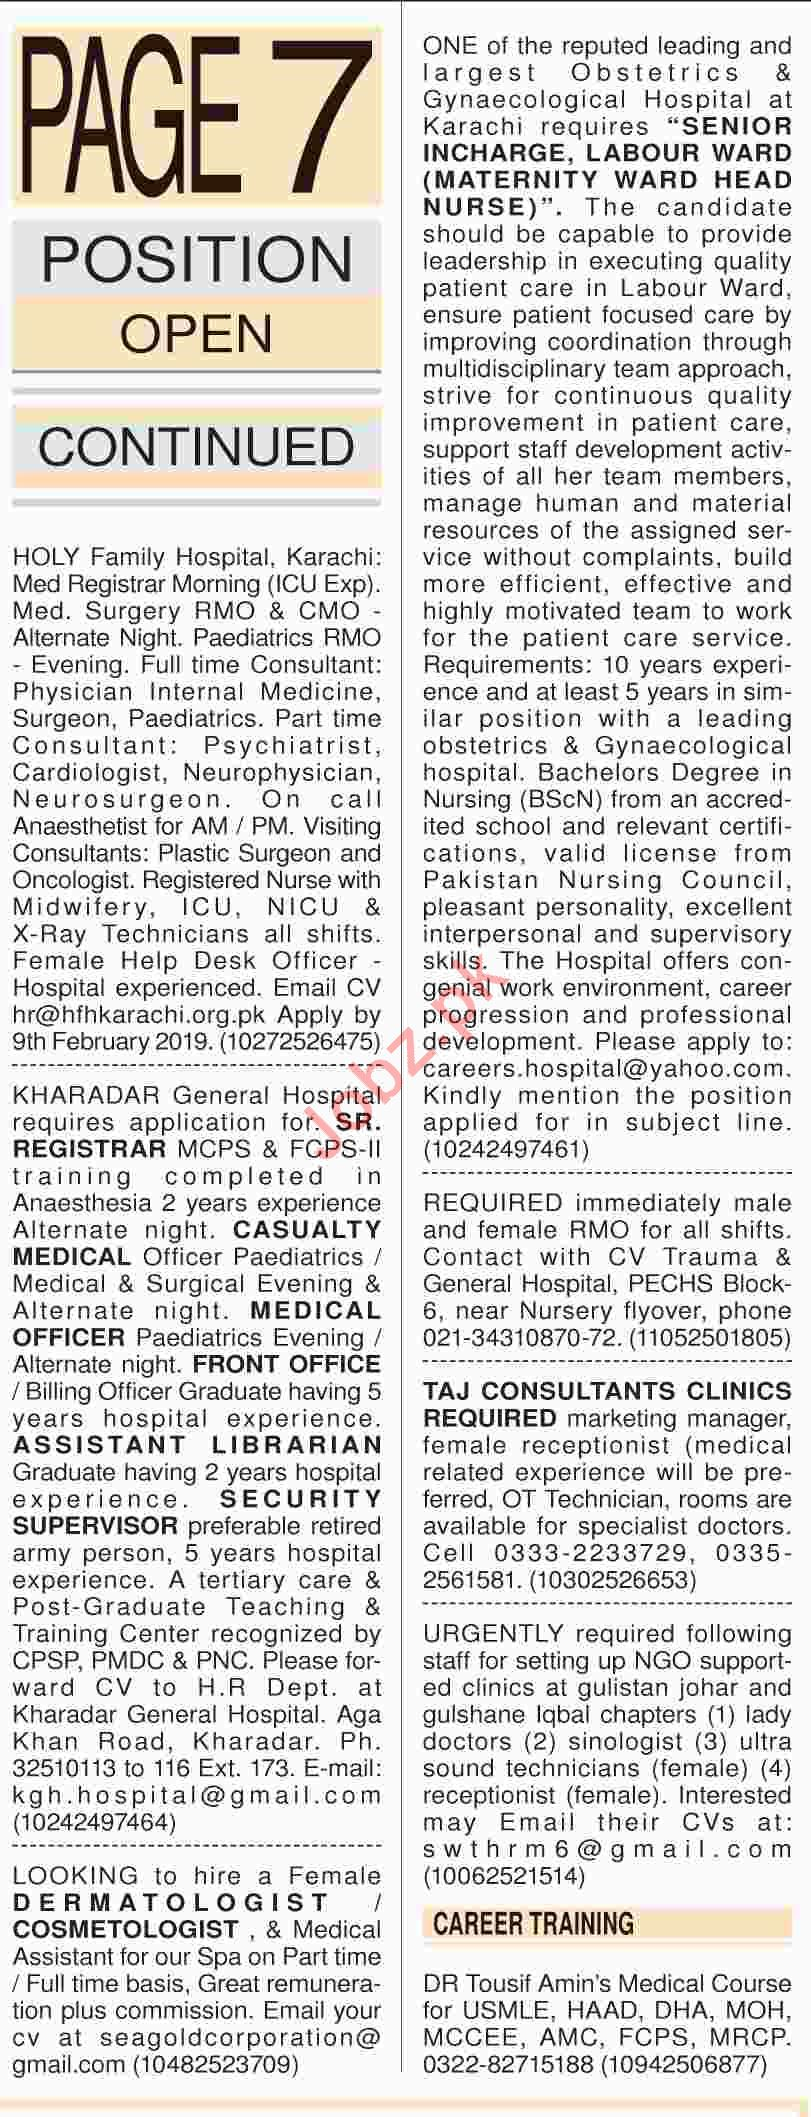 Dawn Sunday Newspaper Medical Classified Ads 03/02/2019